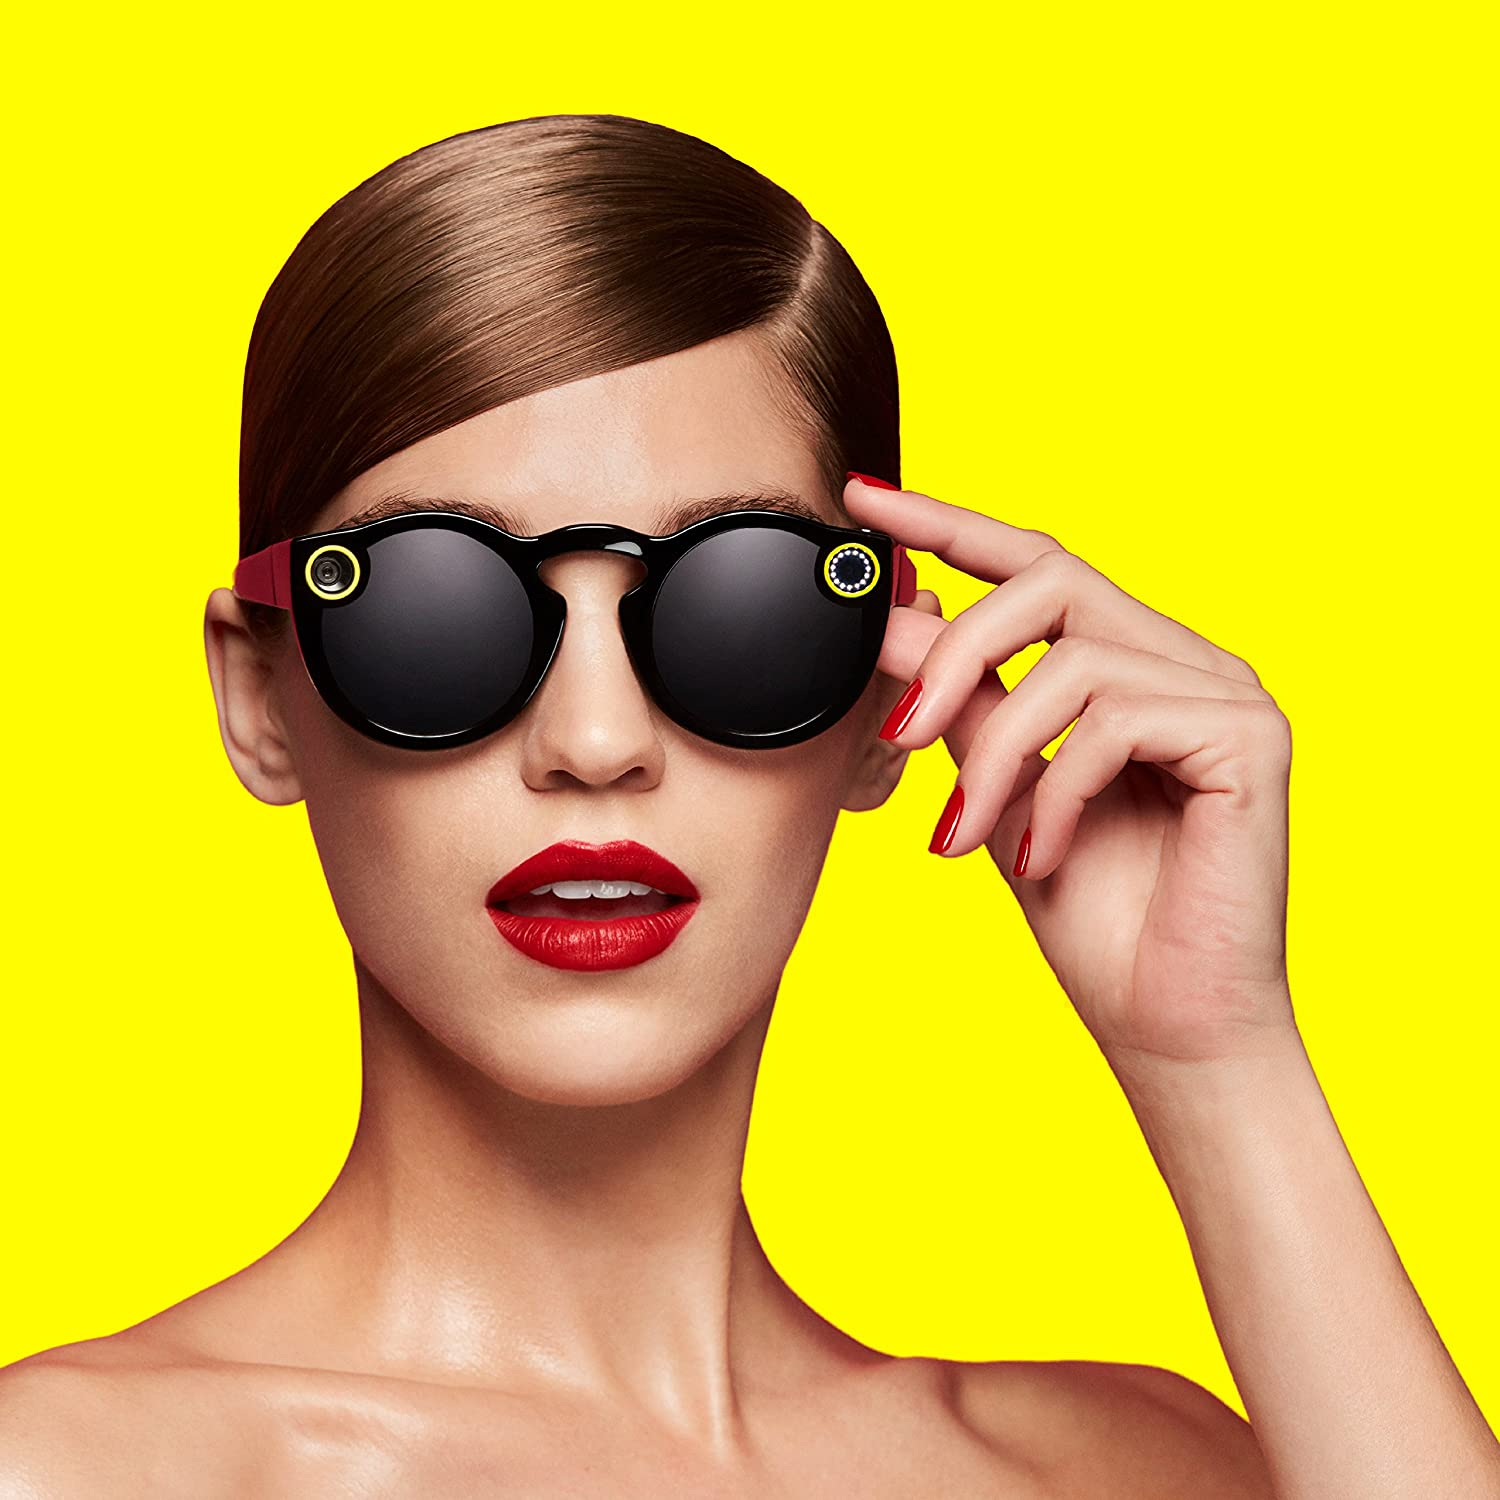 Snapchat's Spectacles Might be a Flop